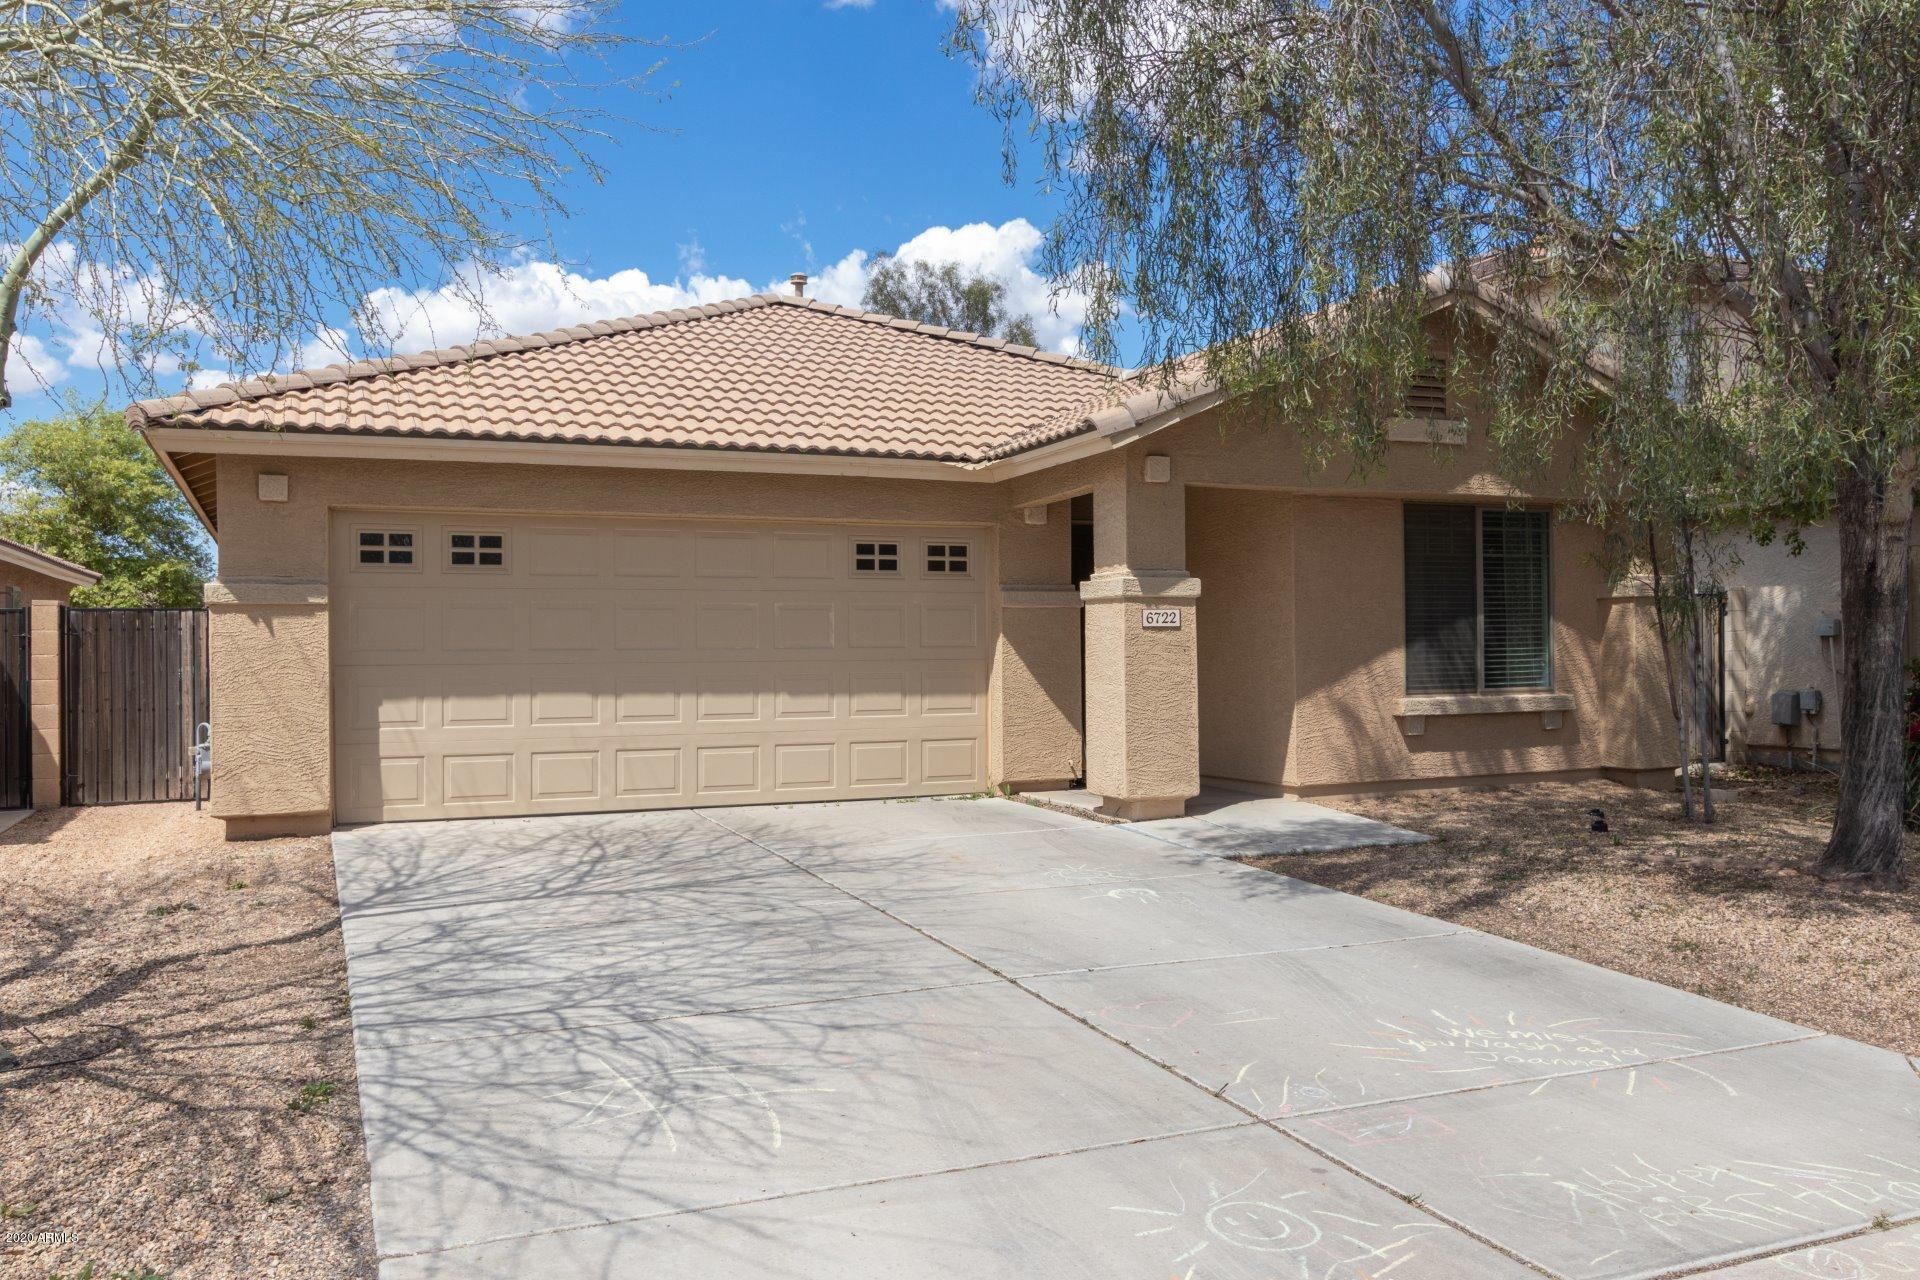 6722 W BEVERLY Road, Laveen, AZ 85339 - #: 6059623